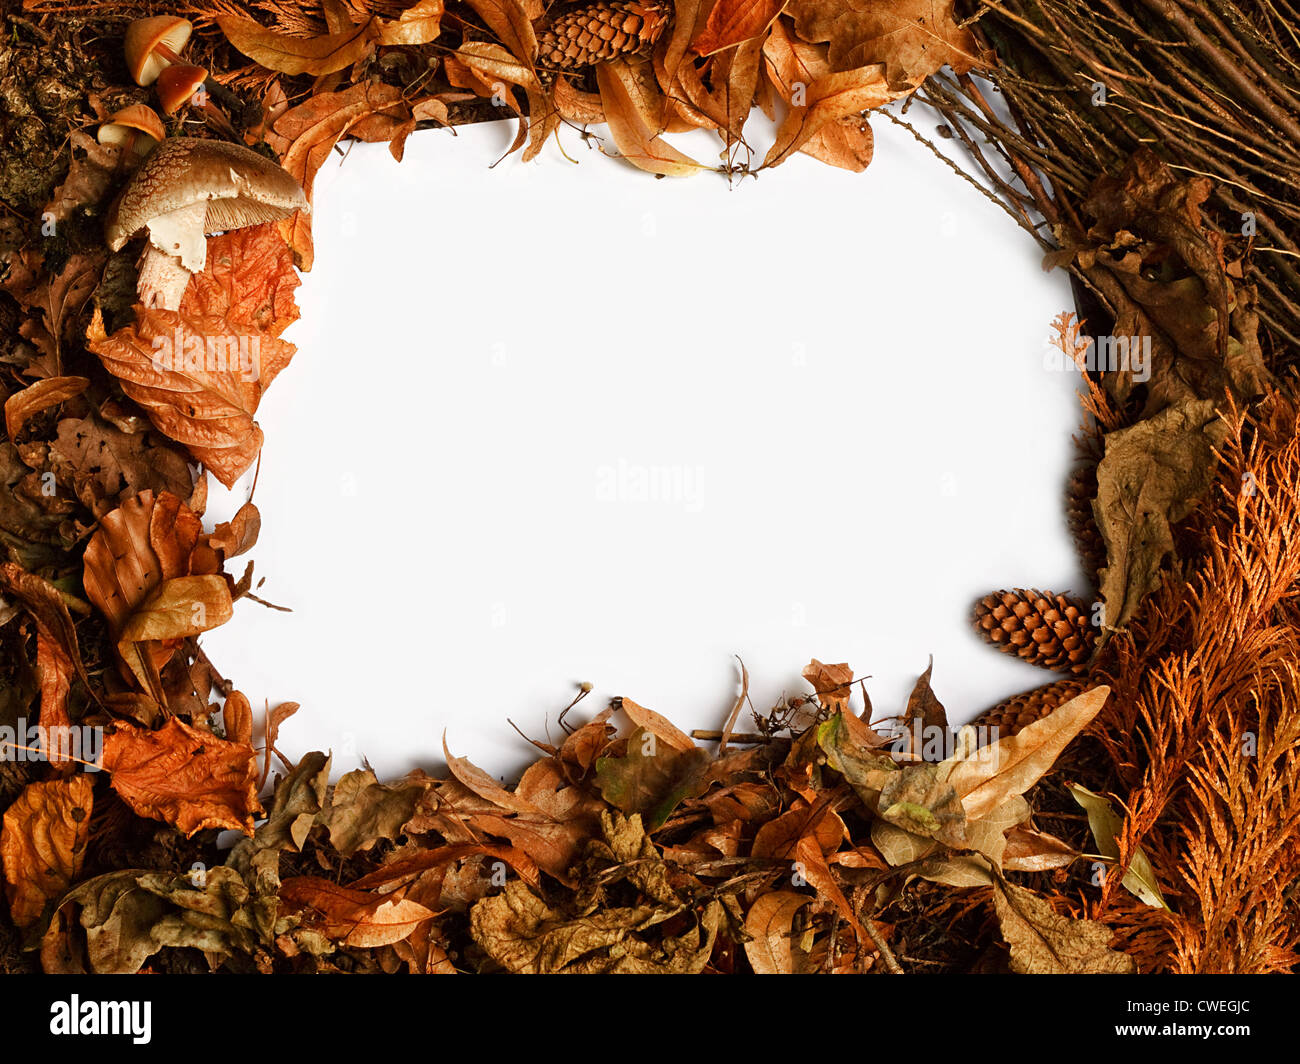 Autumn seasonal border with golden orange leaves a great rustic fall frame - Stock Image